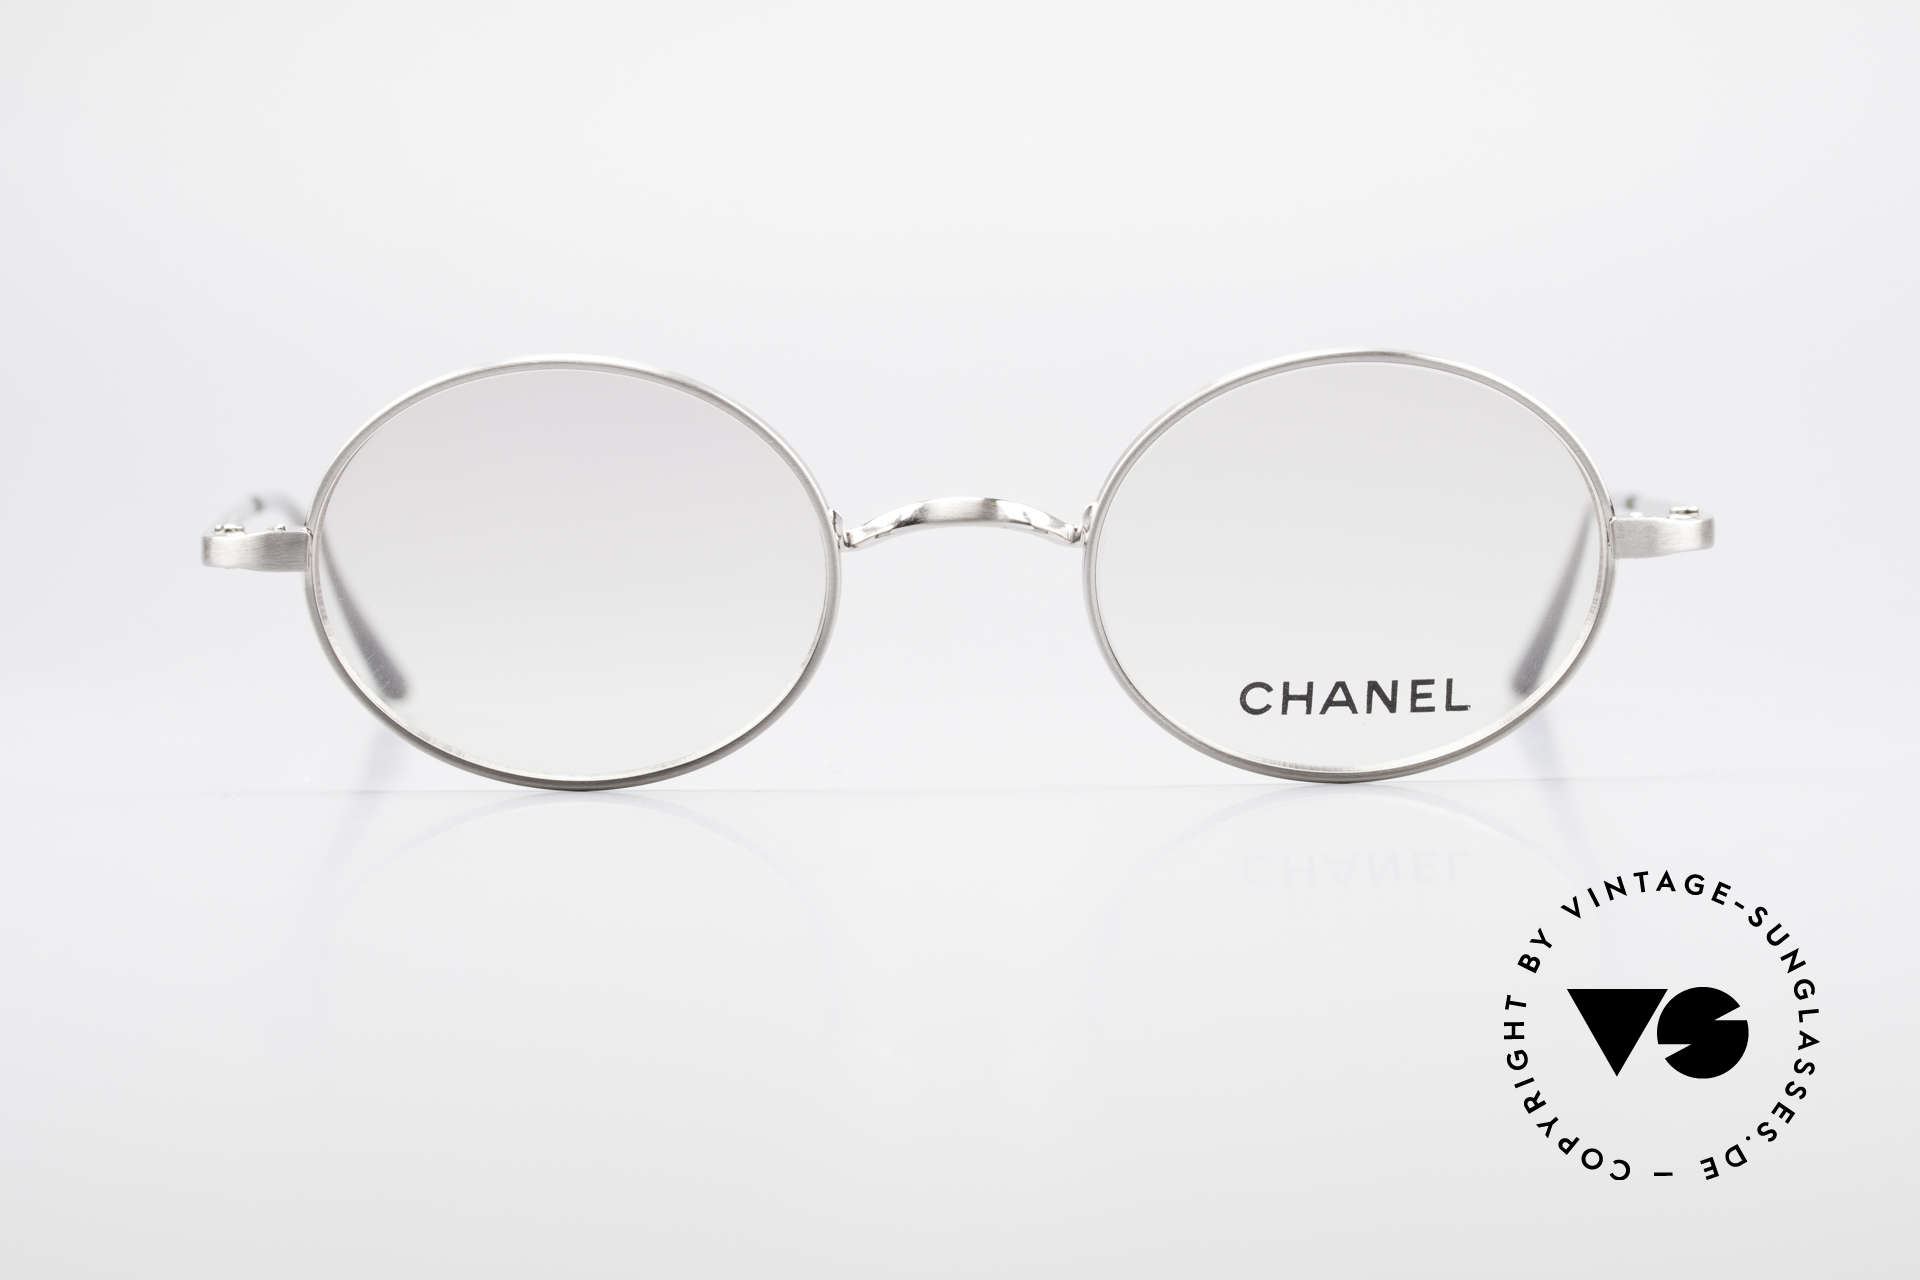 Chanel 2037 Oval Luxury Glasses Clip On, Size: small, Made for Men and Women